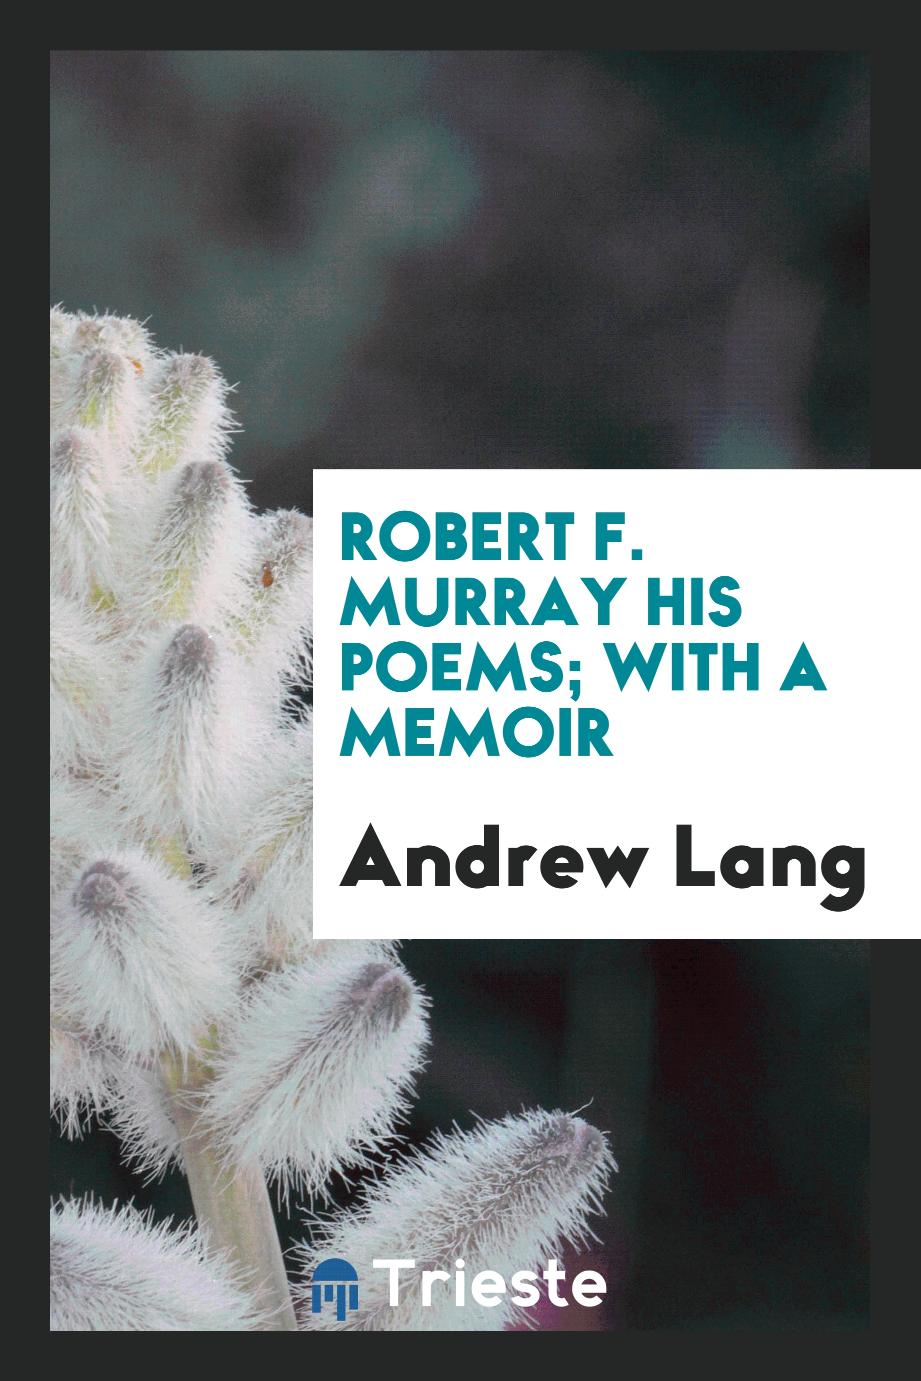 Robert F. Murray his poems; with a memoir